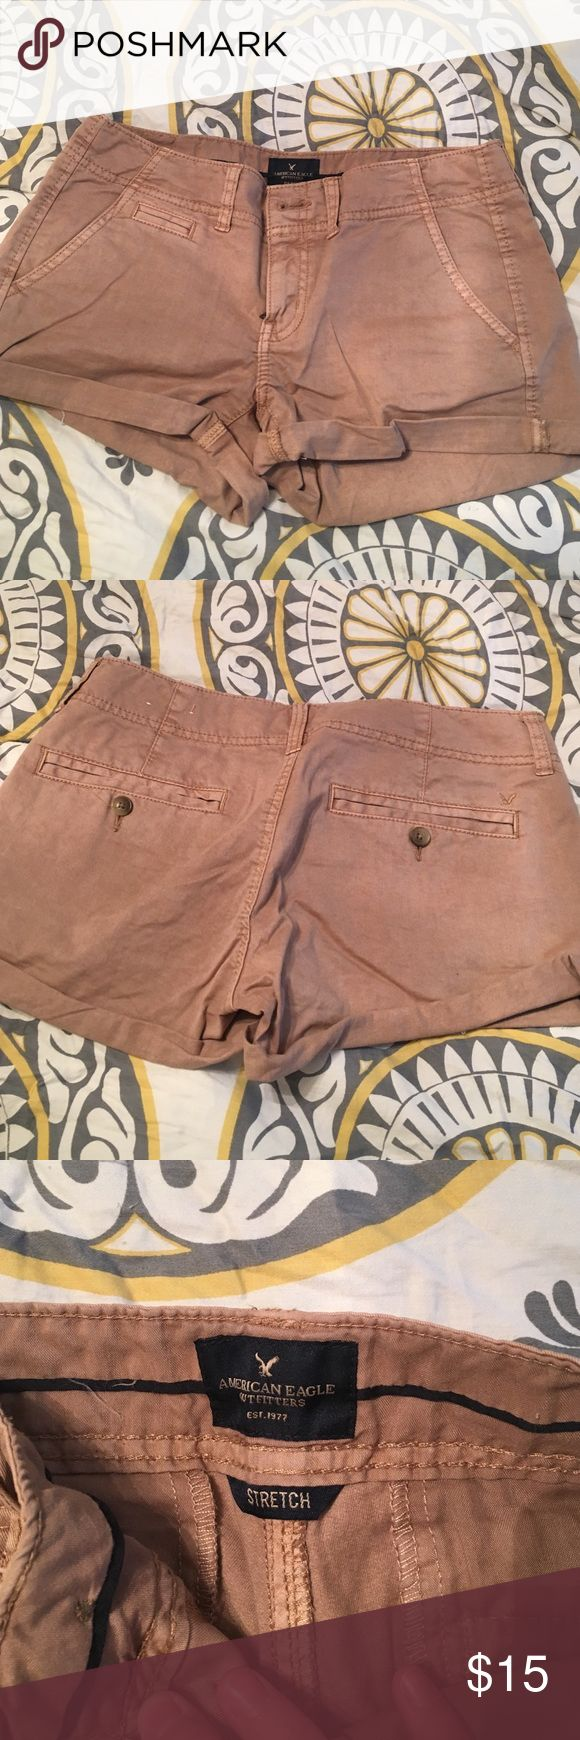 American Eagle khaki shorts American Eagle khaki shorts. Size 4. Only been worn once for family pictures. They don't fit anymore. In great condition. Little wrinkled due to sitting in drawer. American Eagle Outfitters Shorts